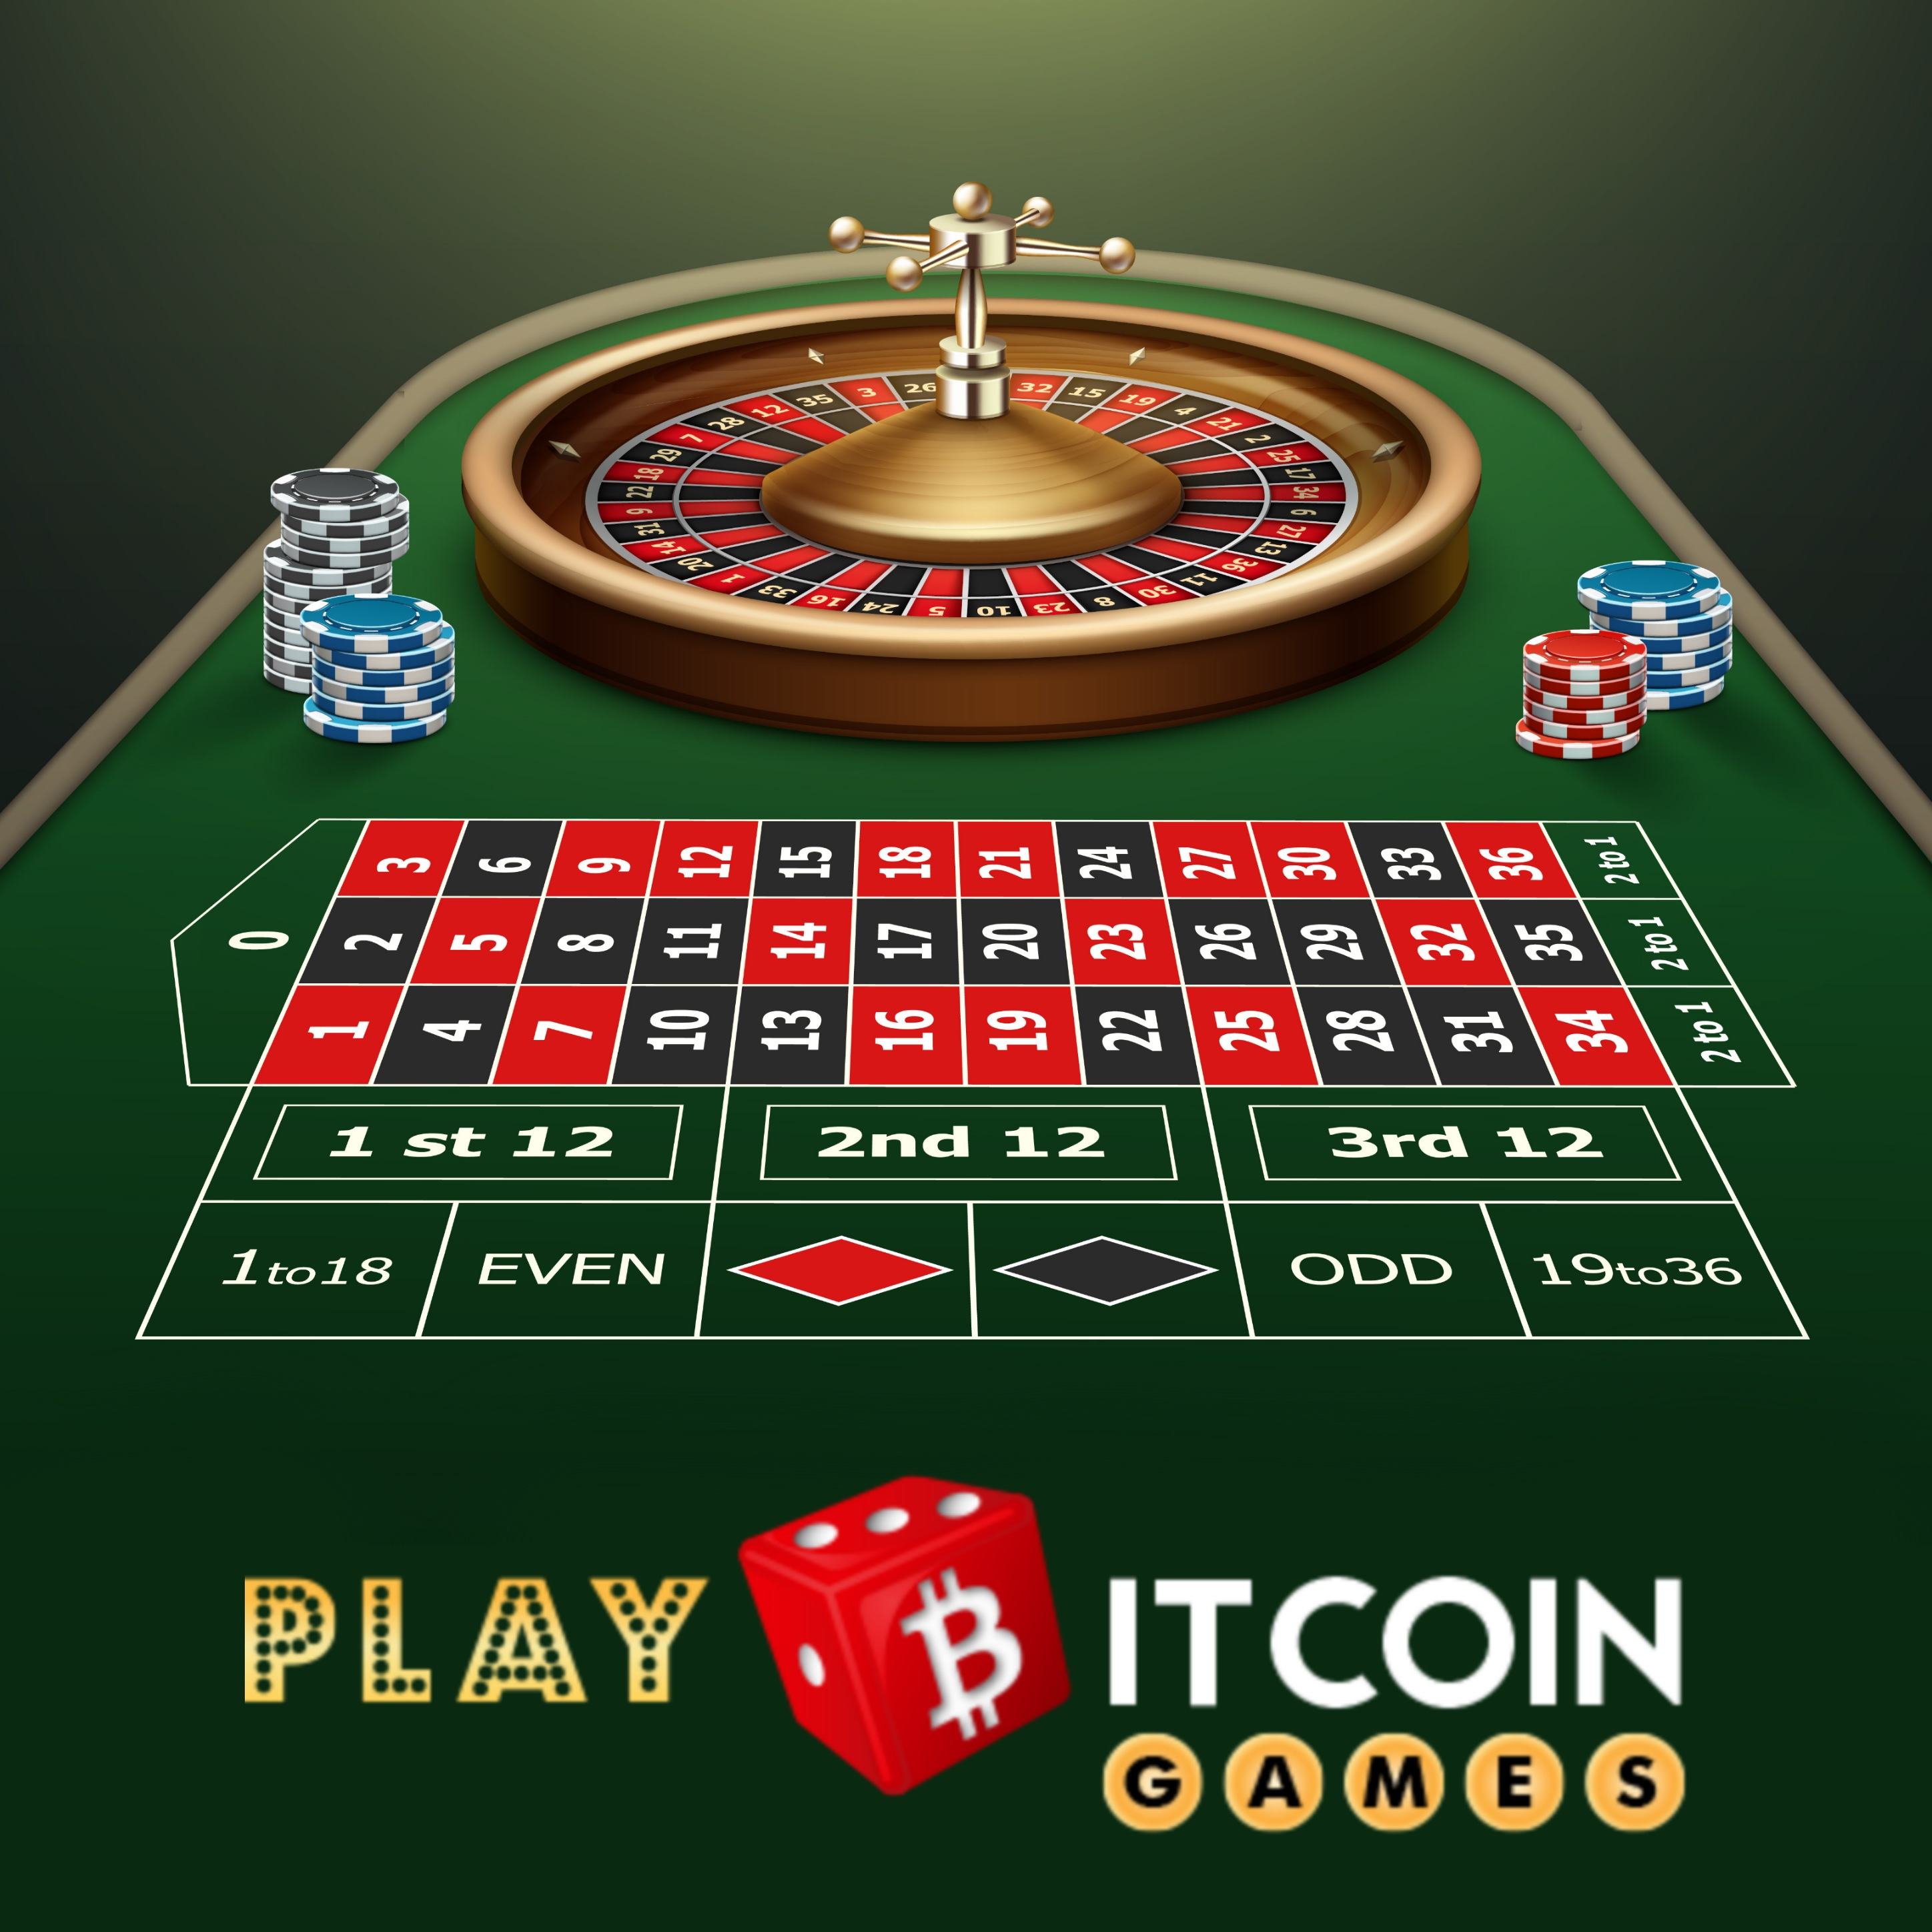 https://www.playbitcoingames.com/ Find the best Online Bitcoin Casino where you can play Online Casino Games With Bitcoins like Table Cards, Slots, Random Numbers, Jackpot, Scratch card. Instant Cash out bitcoin has emerged as the most popular cryptocurrency which is accepted across thousands of companies and establishments all around the globe.